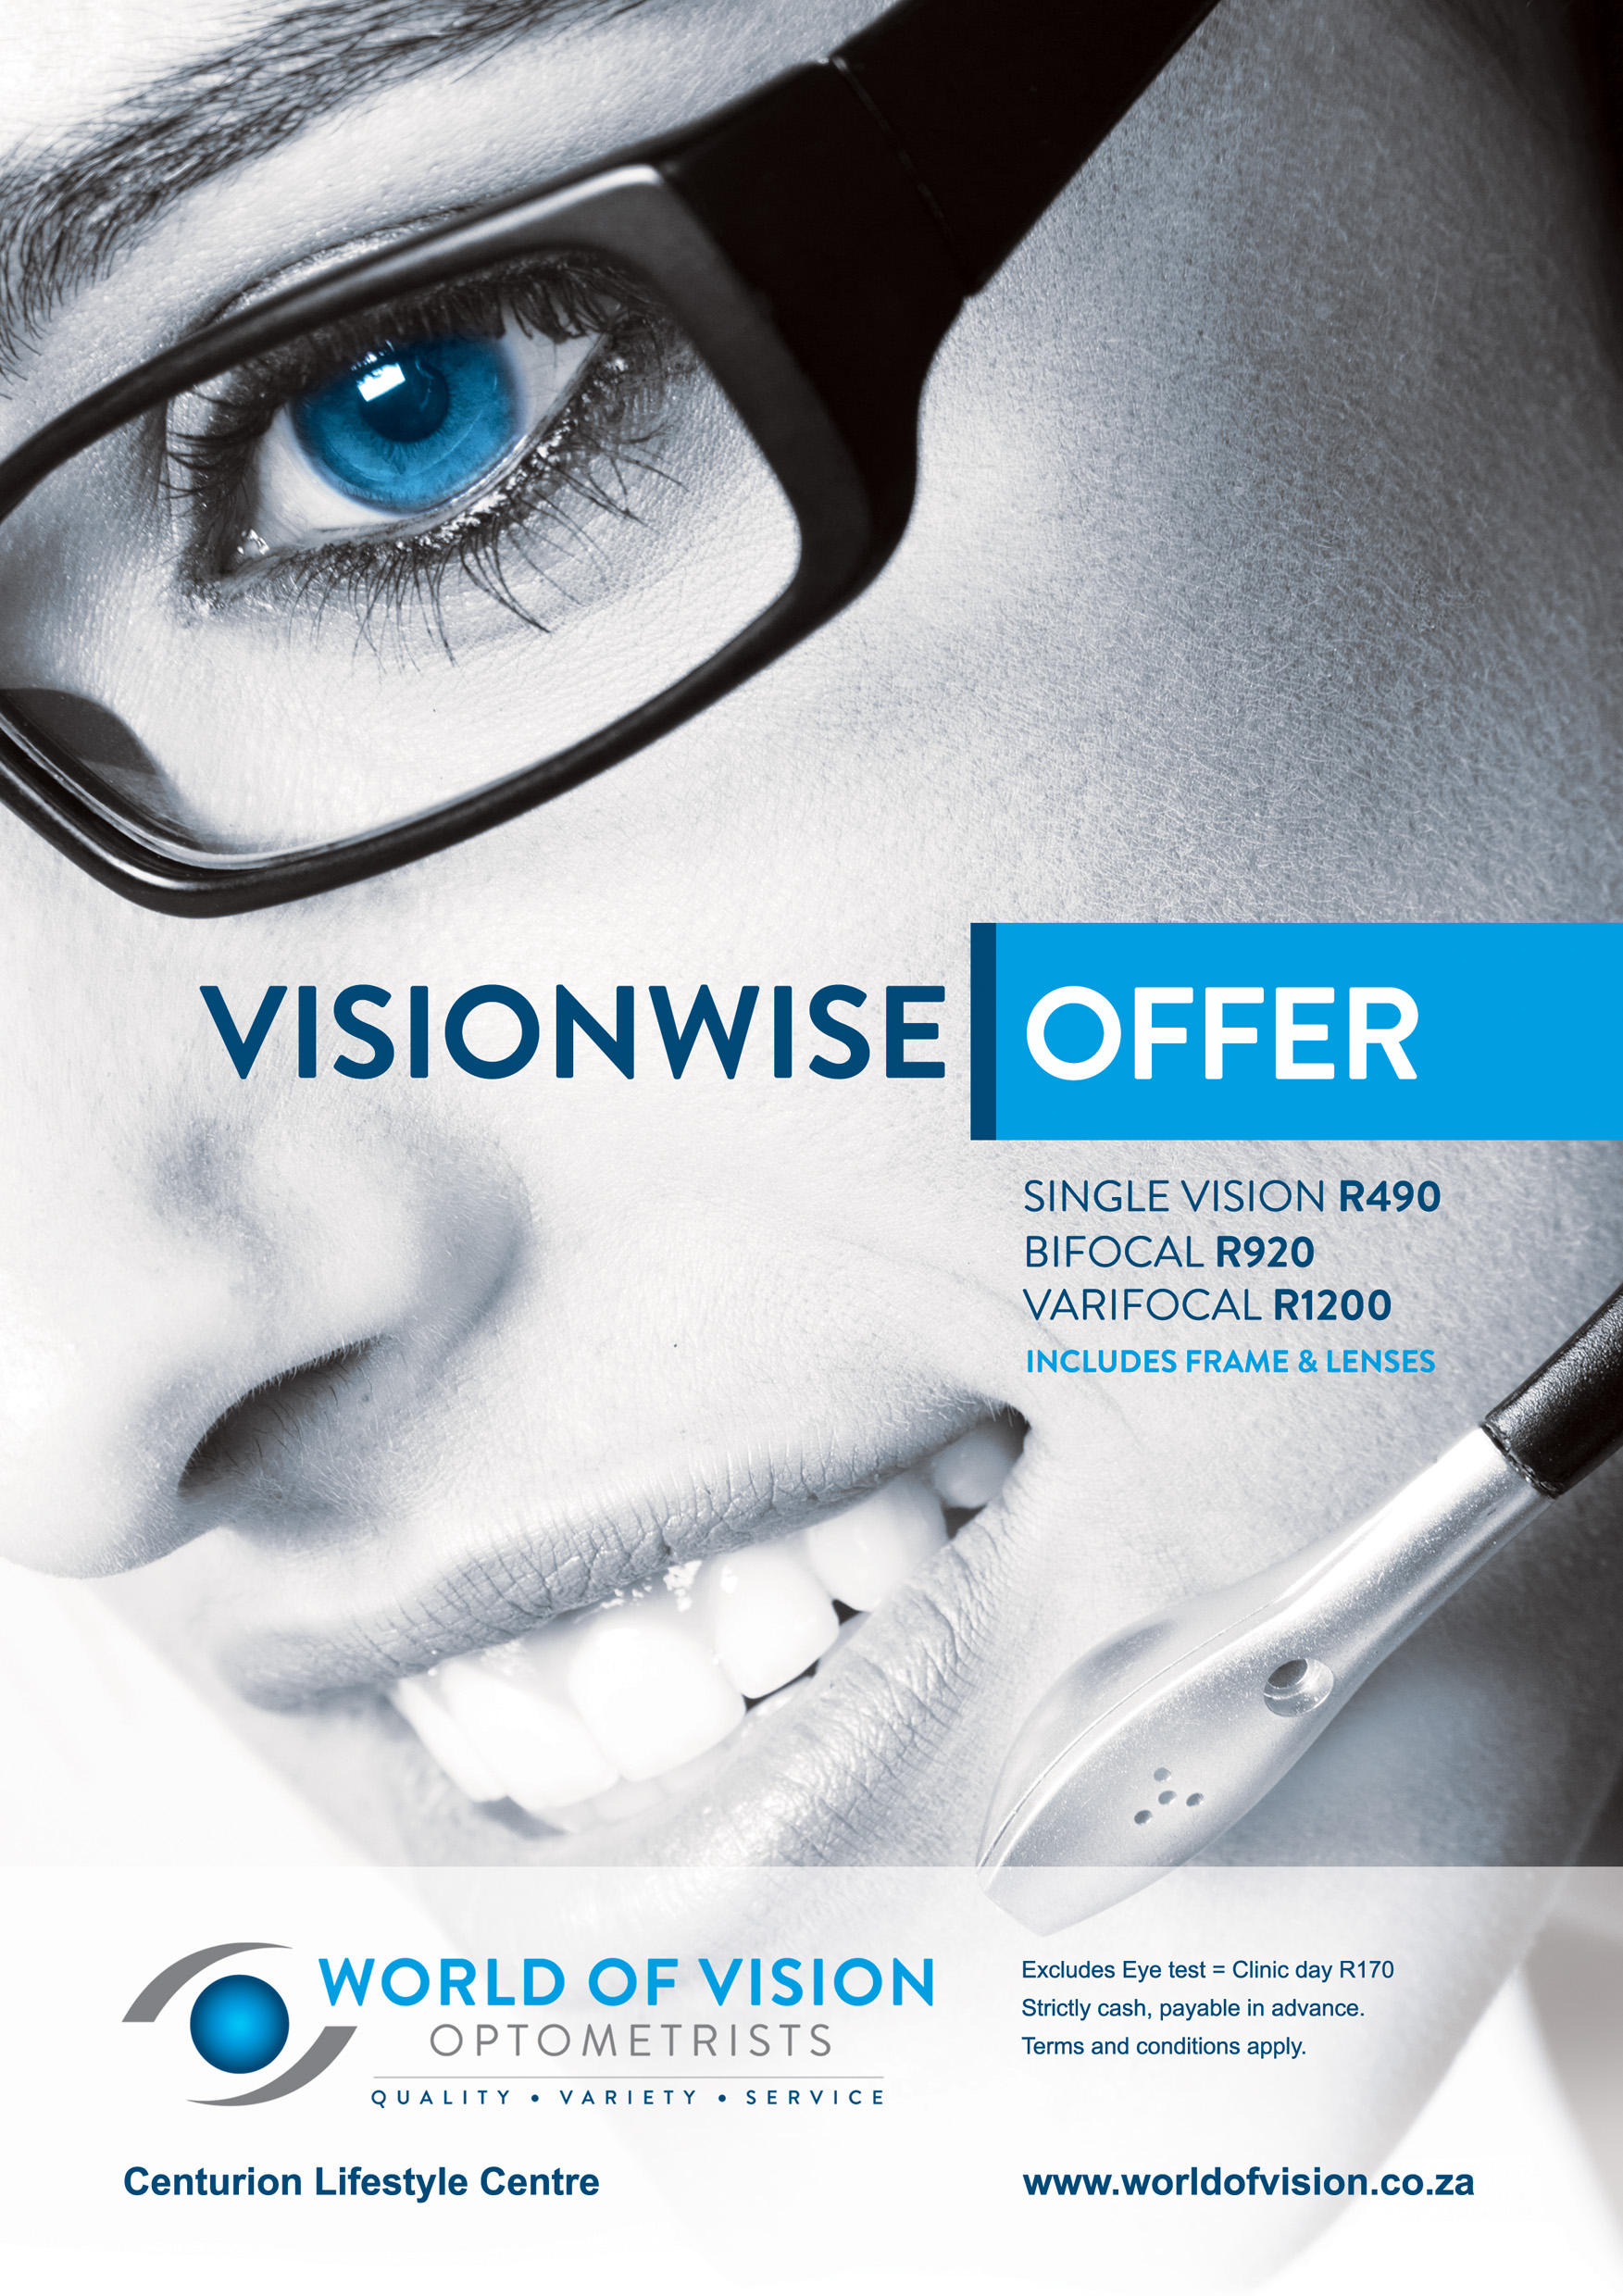 WOV Vision Wise Offer